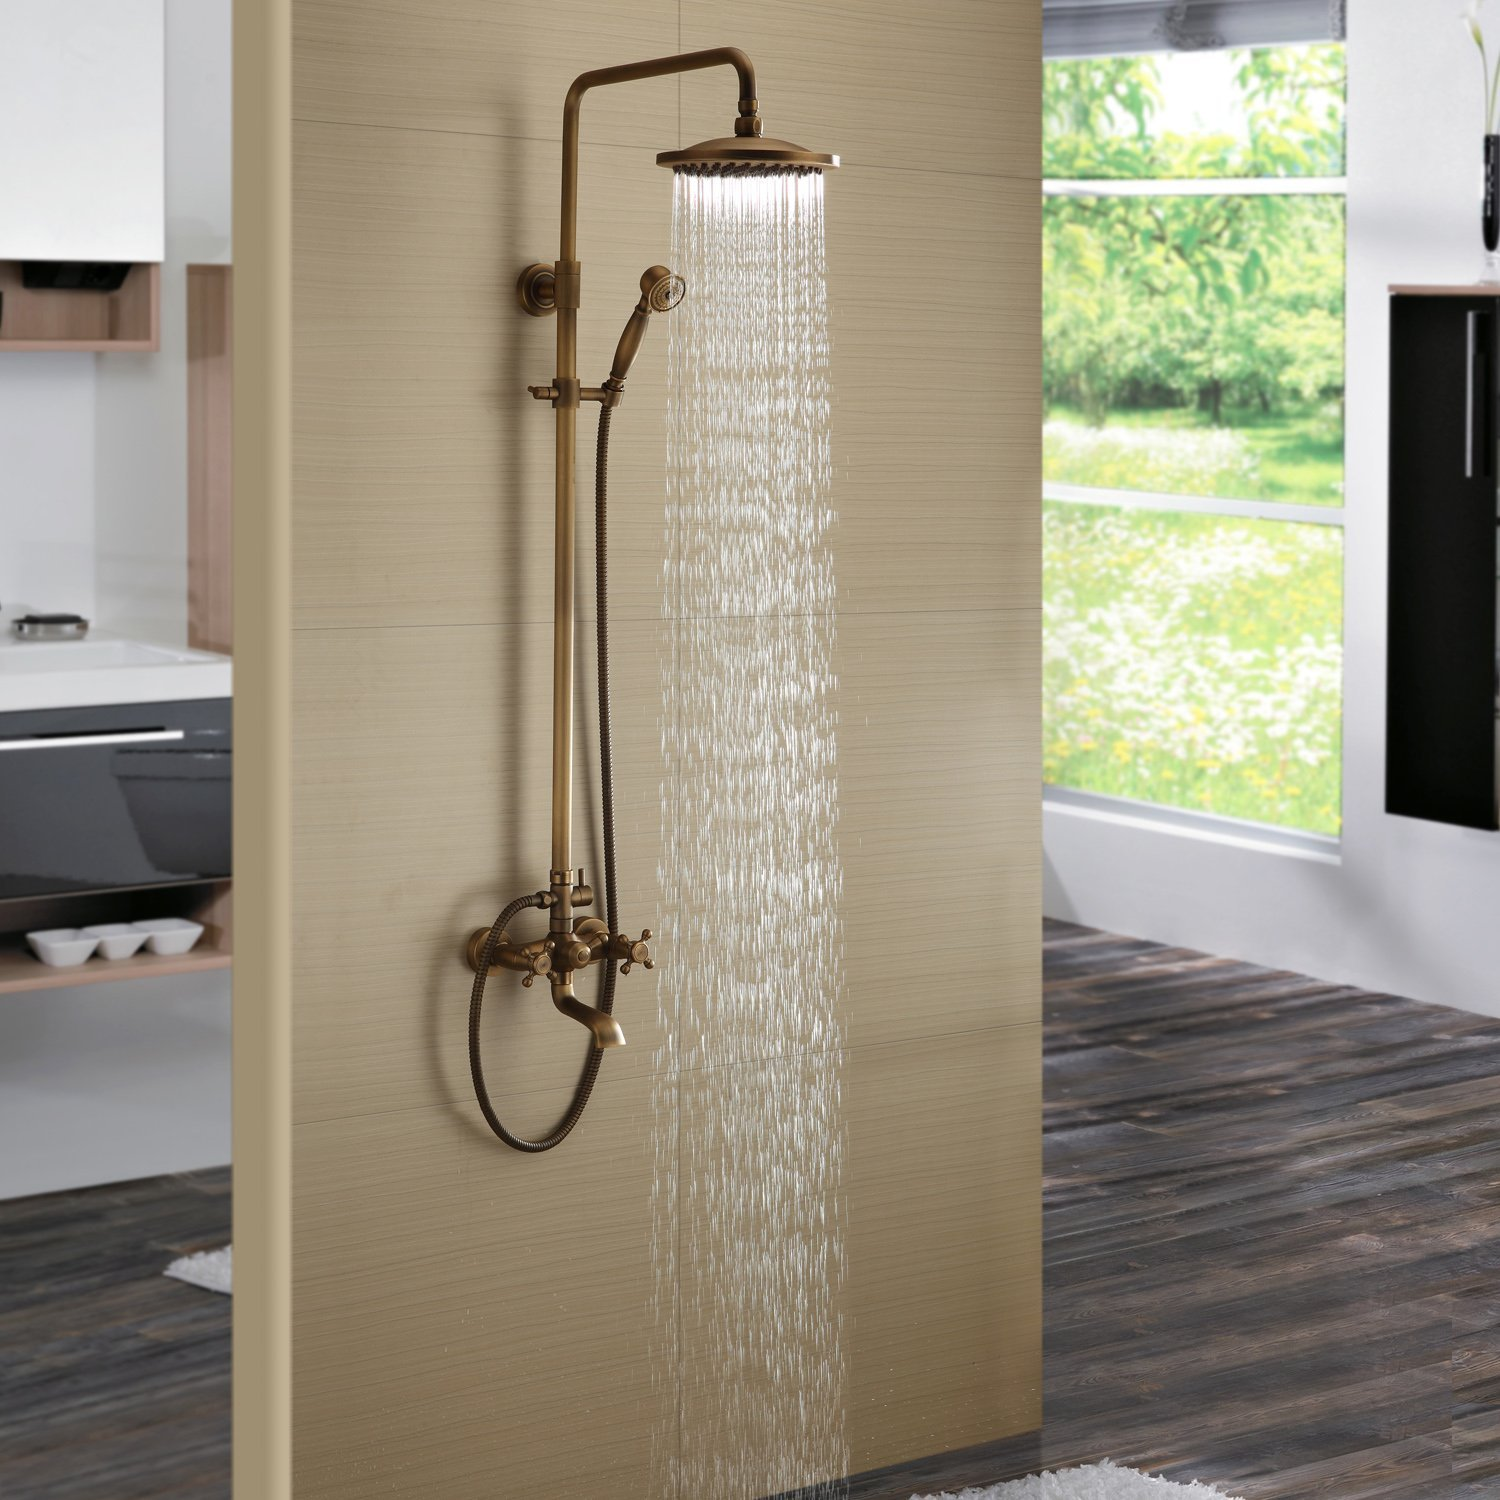 Get Quotations Bath Shower Faucet Set Complete Antique Br Finish Wall Mount With 8 Rain Head